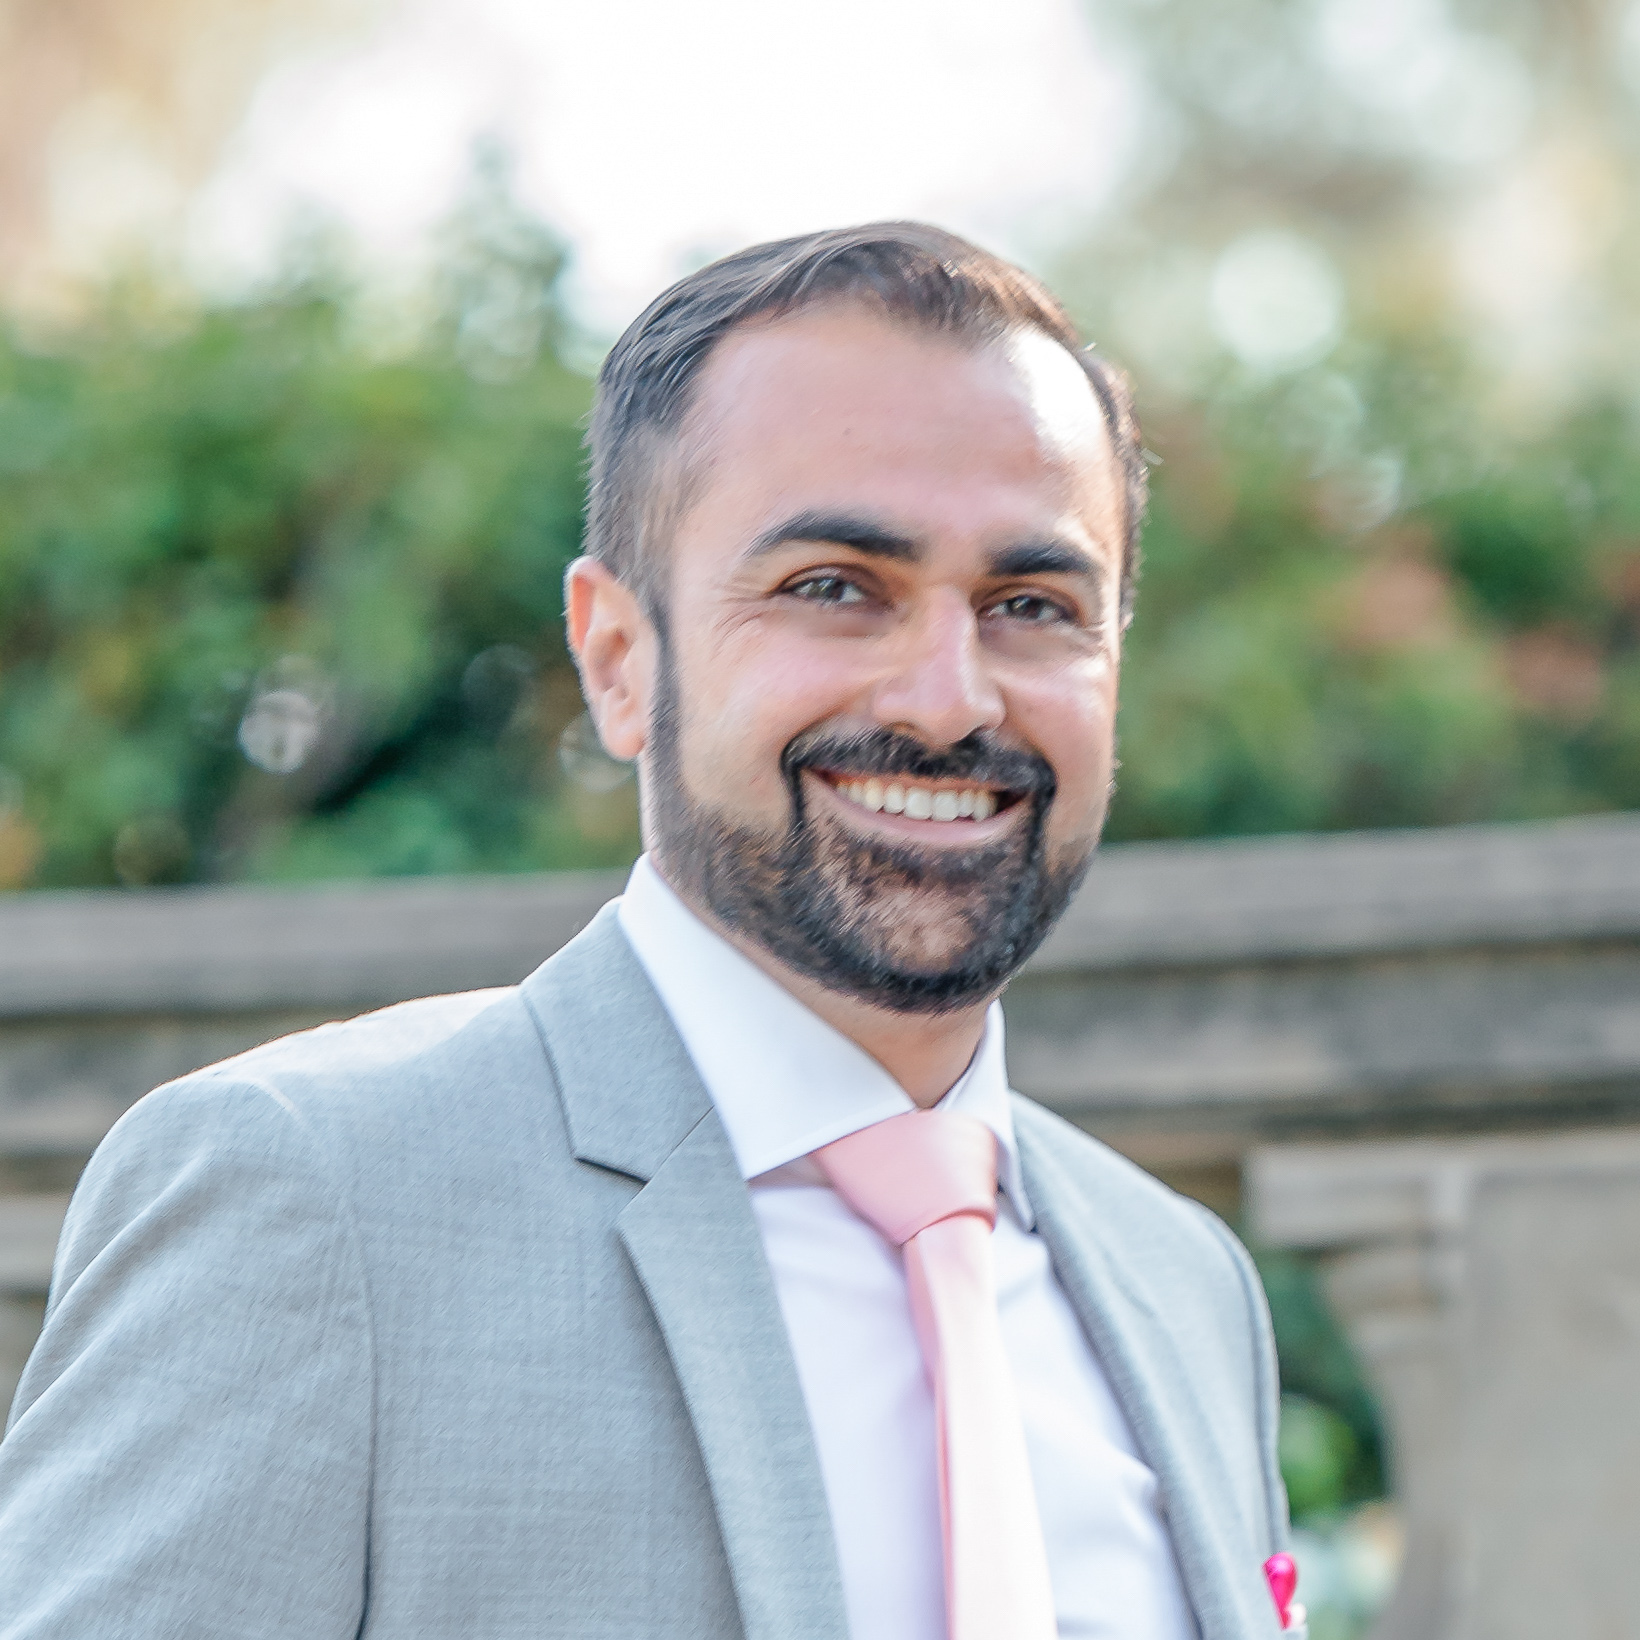 """Nikhil Barot is an Associate Professor of Medicine at David Geffen School of Medicine at UCLA and practices Pulmonary & Critical Medicine and Palliative Care Medicine at Olive View-UCLA Medical Center in Los Angeles. His essay      """"Numb""""      appears in the current issue of Intima."""